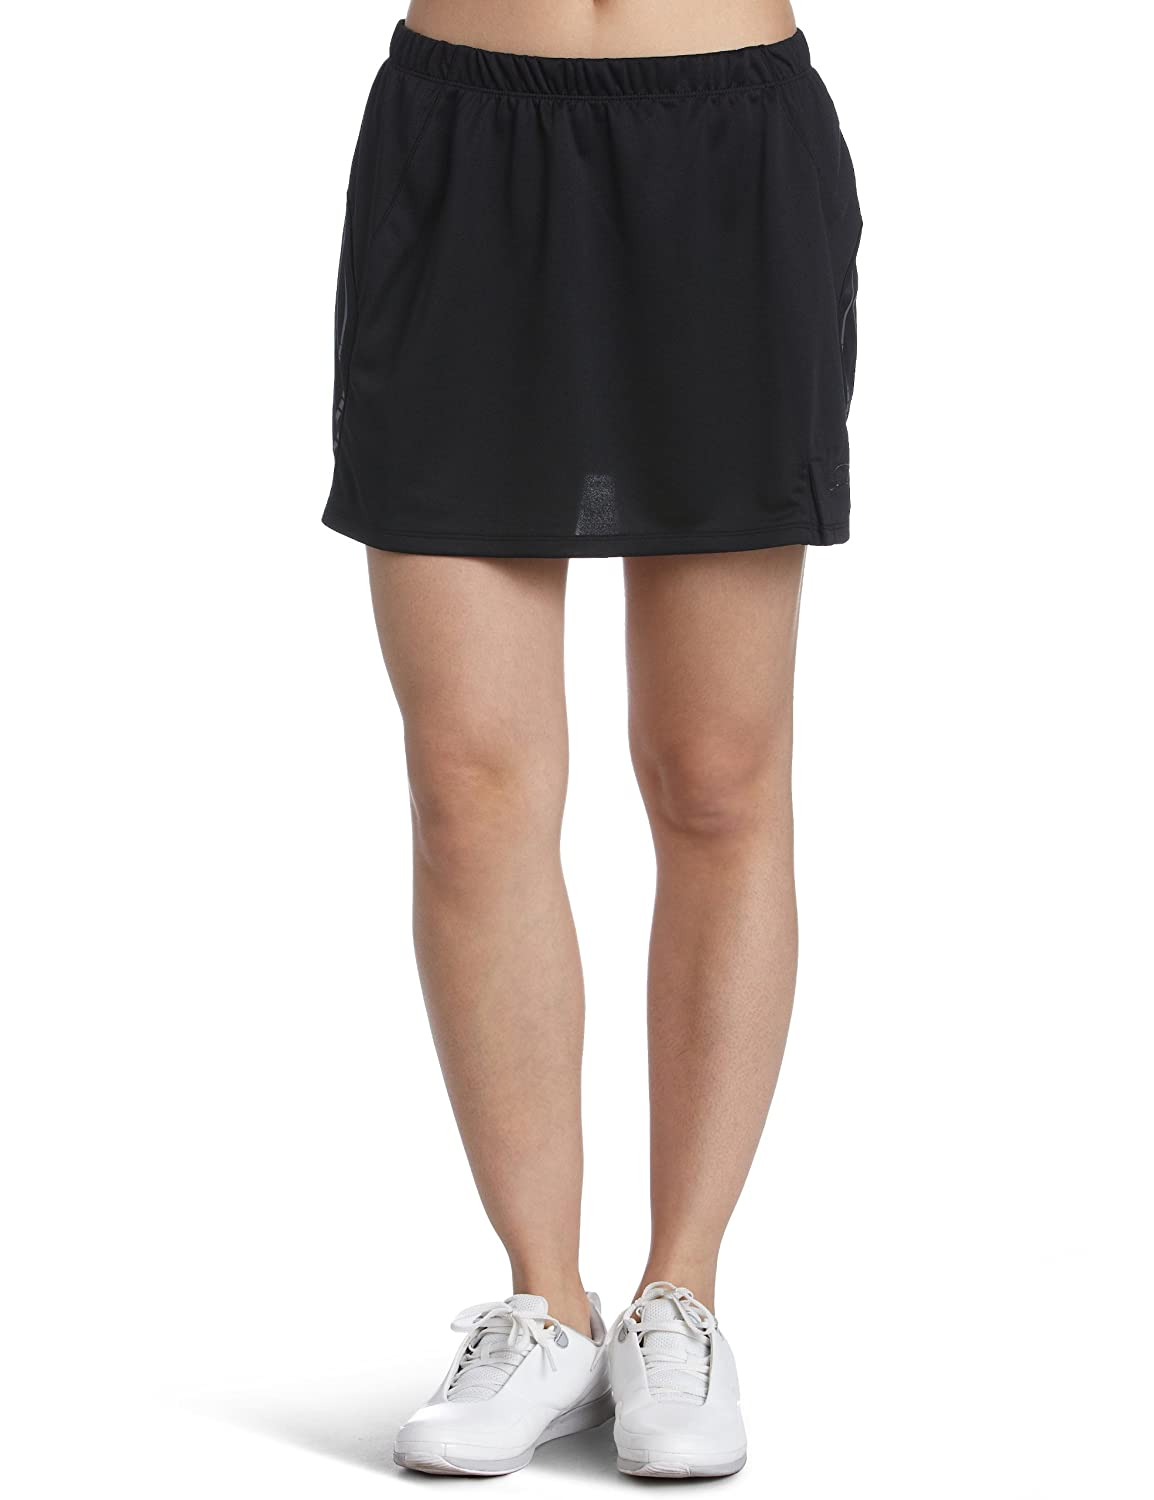 Li Ning Skirt and Shorts Set Black Li-Ning